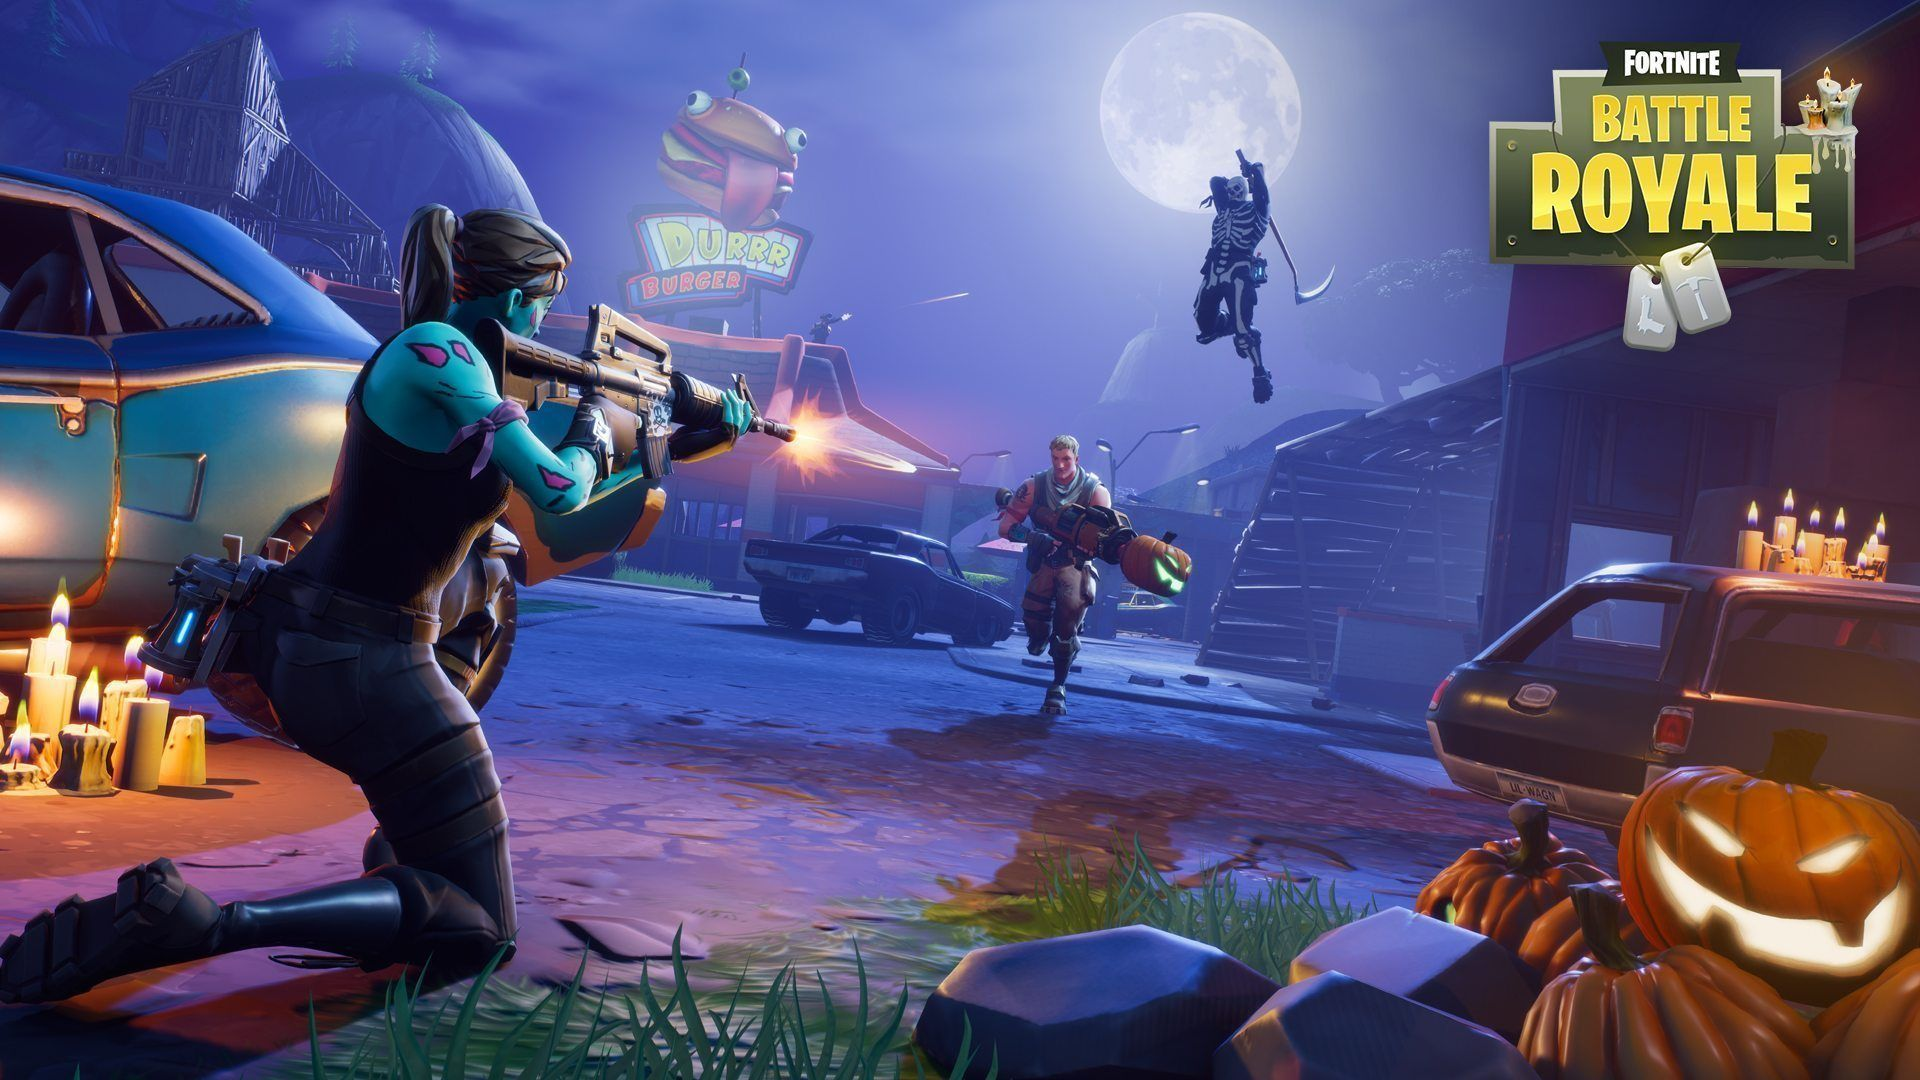 35 Best Free Fortnite Christmas Desktop Wallpapers Wallpaperaccess